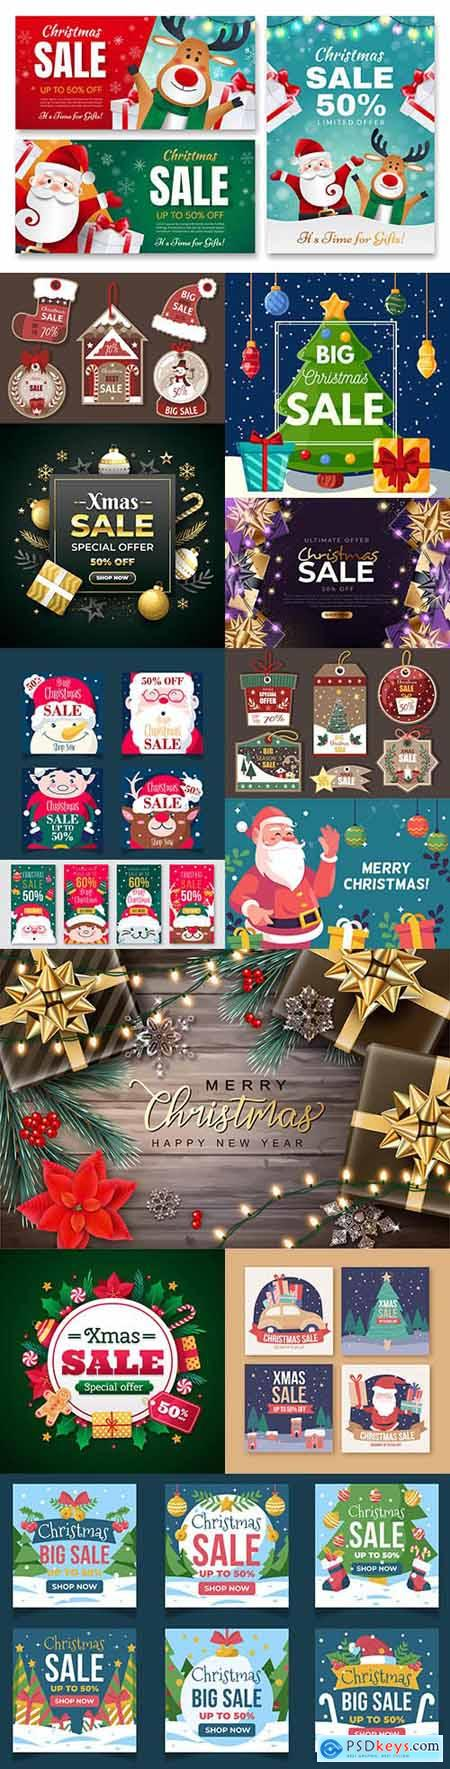 Christmas sale instagram template on social networks